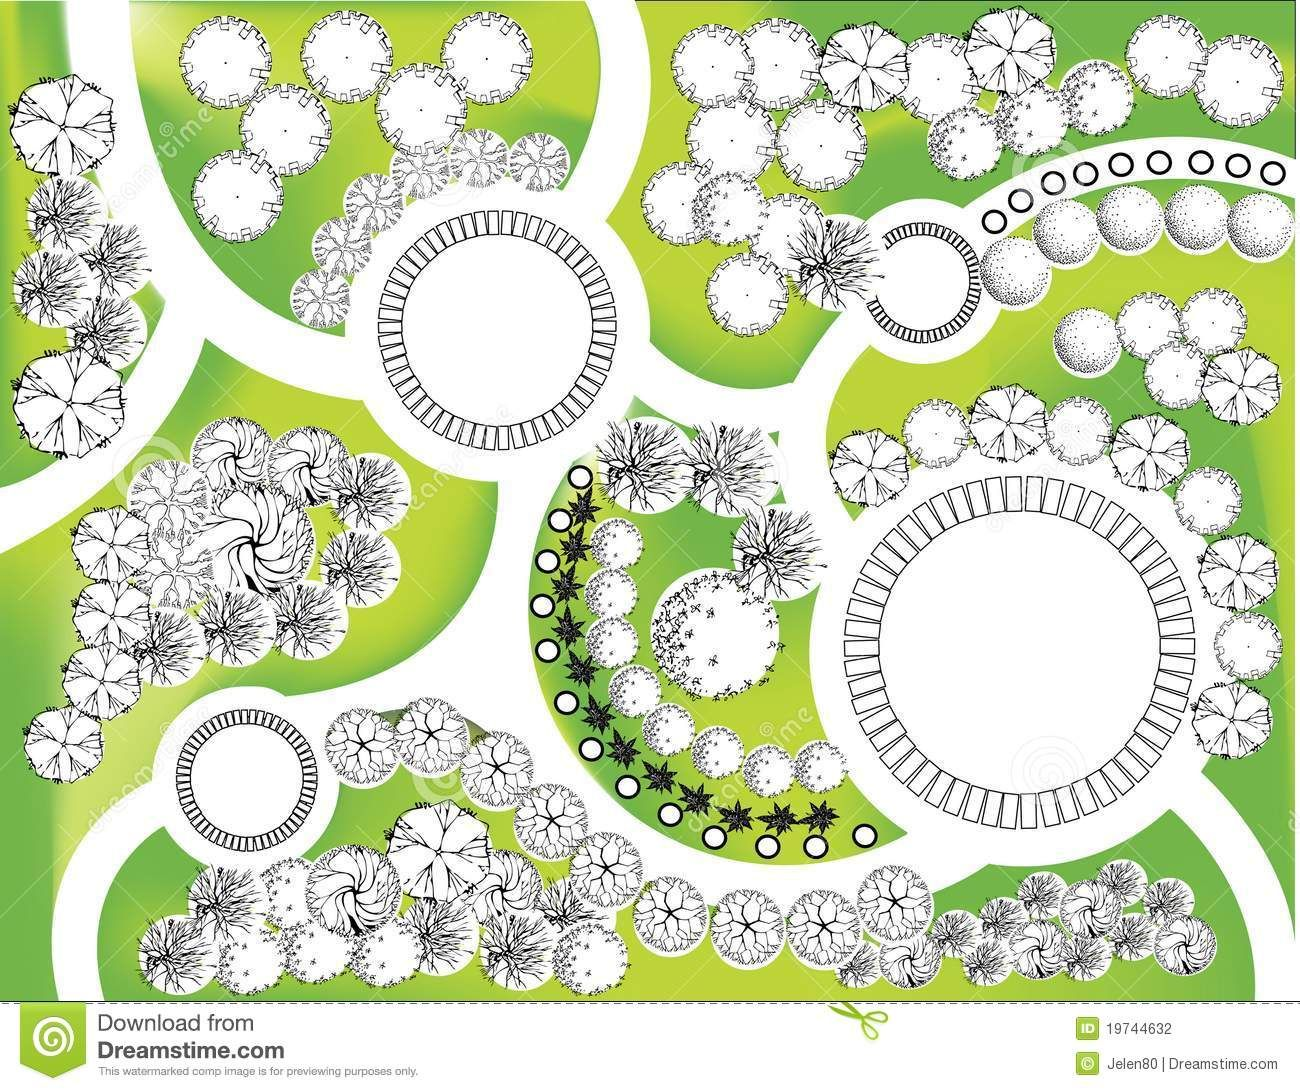 Plan Of Garden Download From Over 63 Million High Quality Stock Photos Images Vectors Sig Landscape Design Drawings Landscape Plans Landscape Design Plans